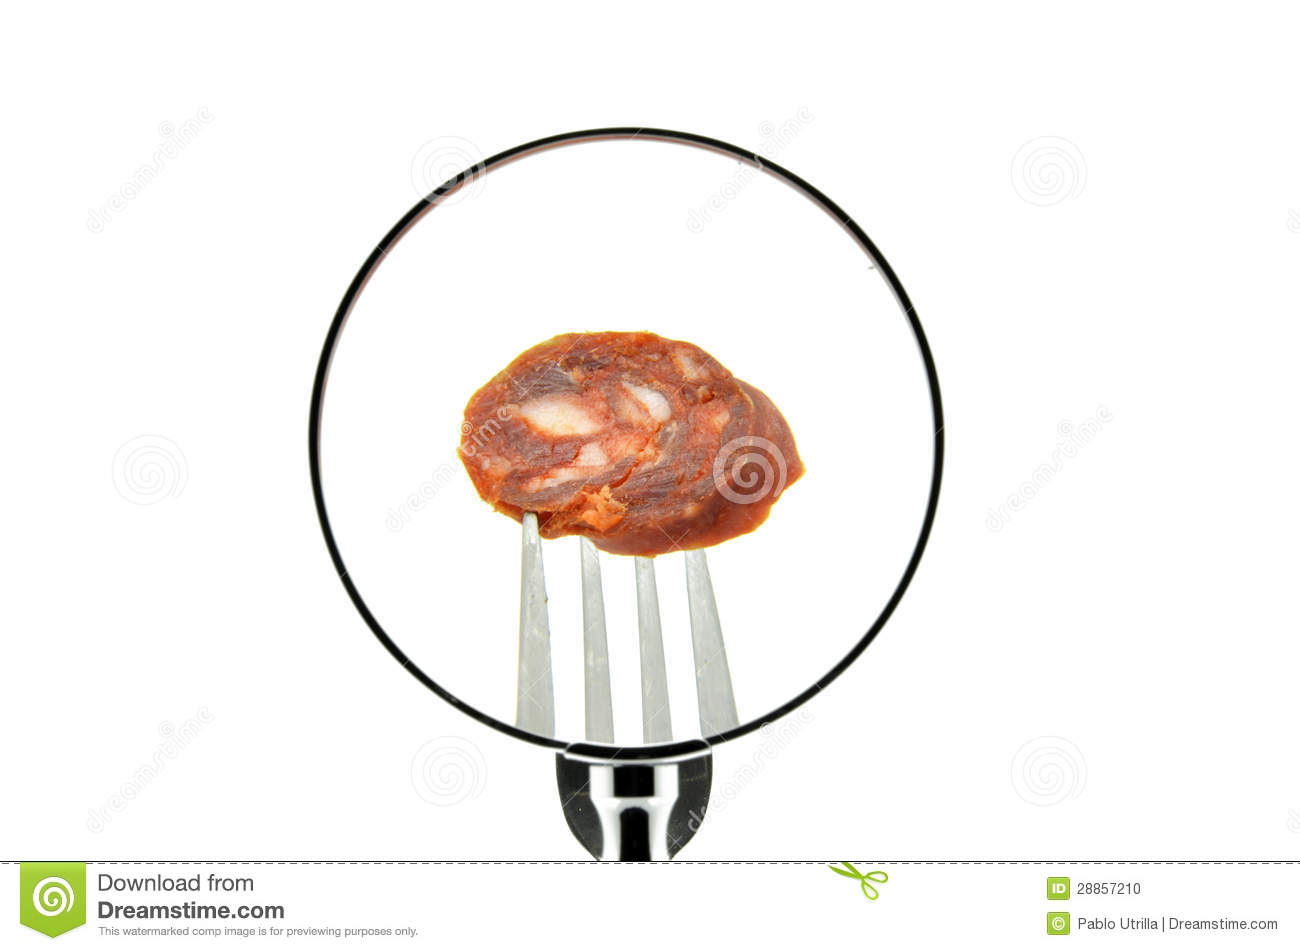 A piece of sausage on a fork punctured seen behind a magnifying glass